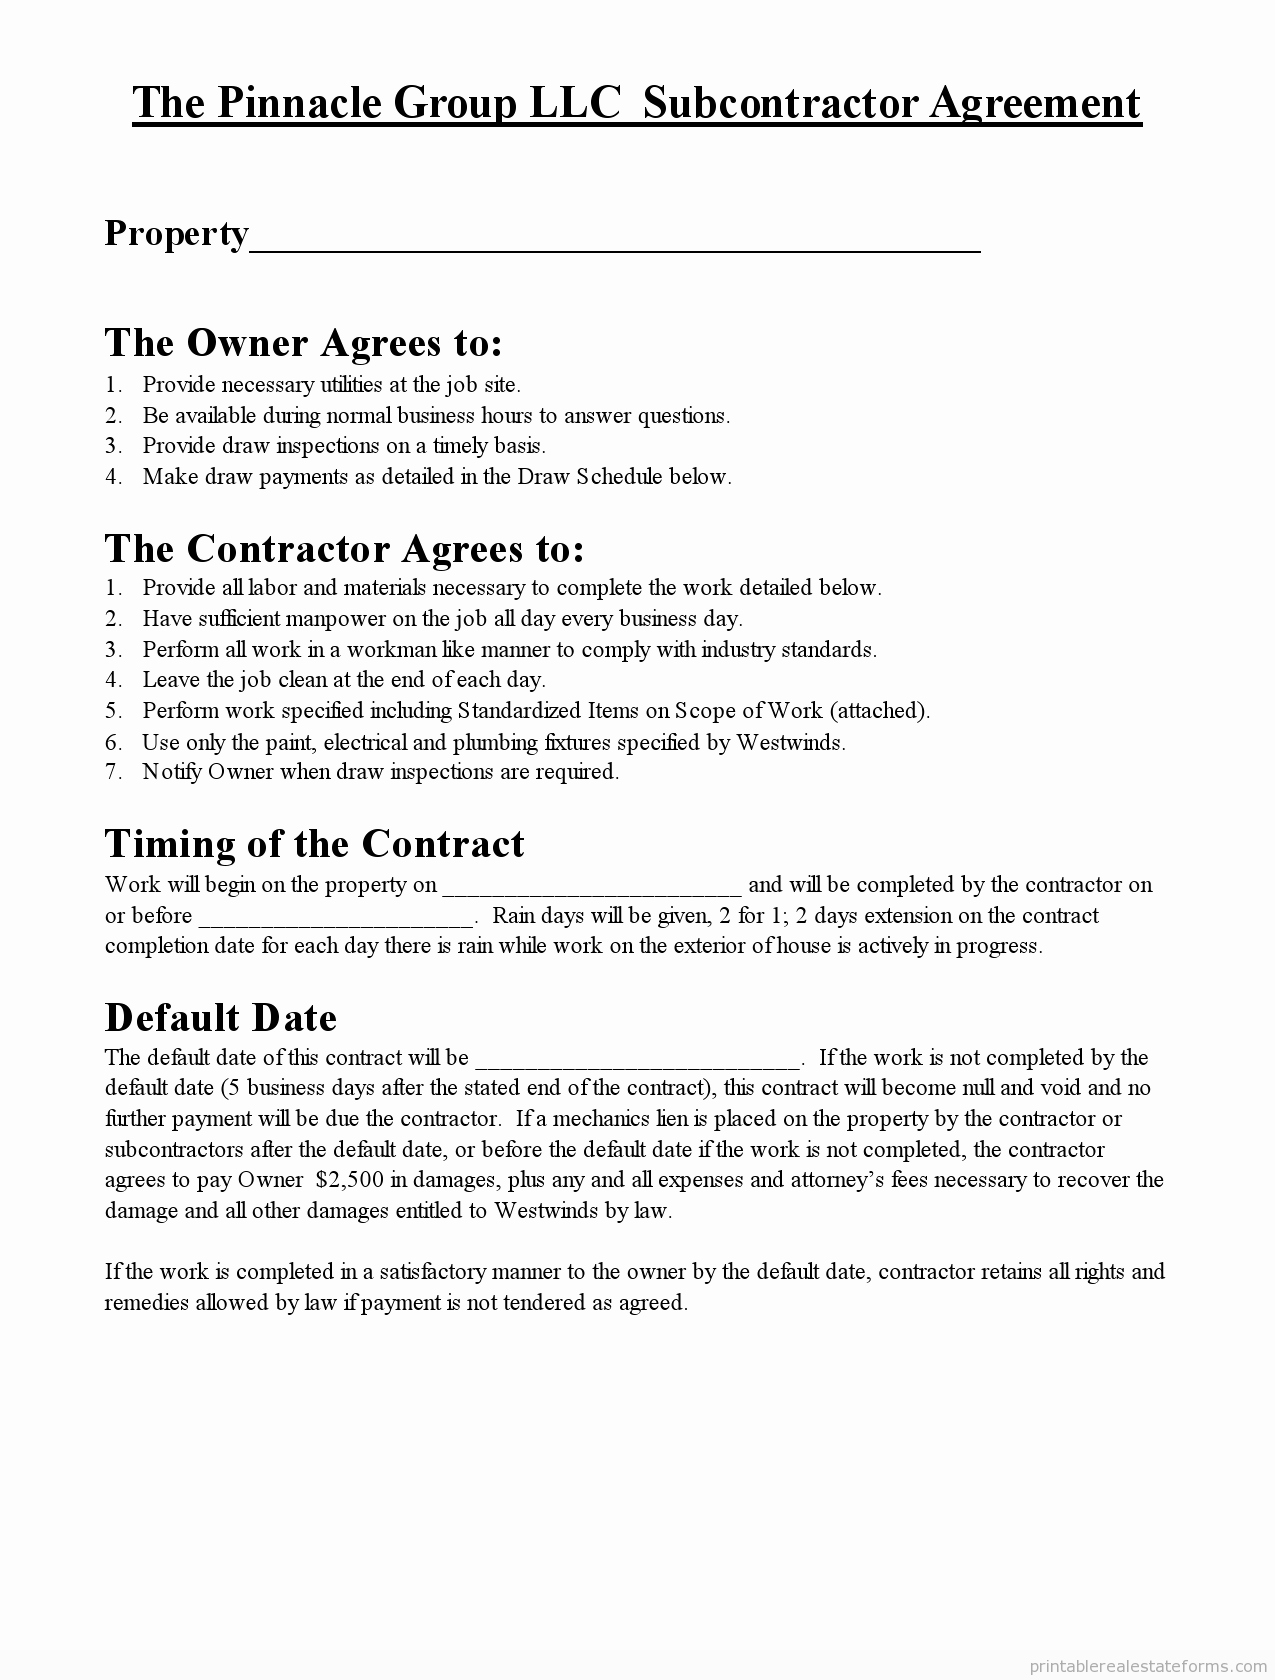 Free Printable Subcontractor Agreement form